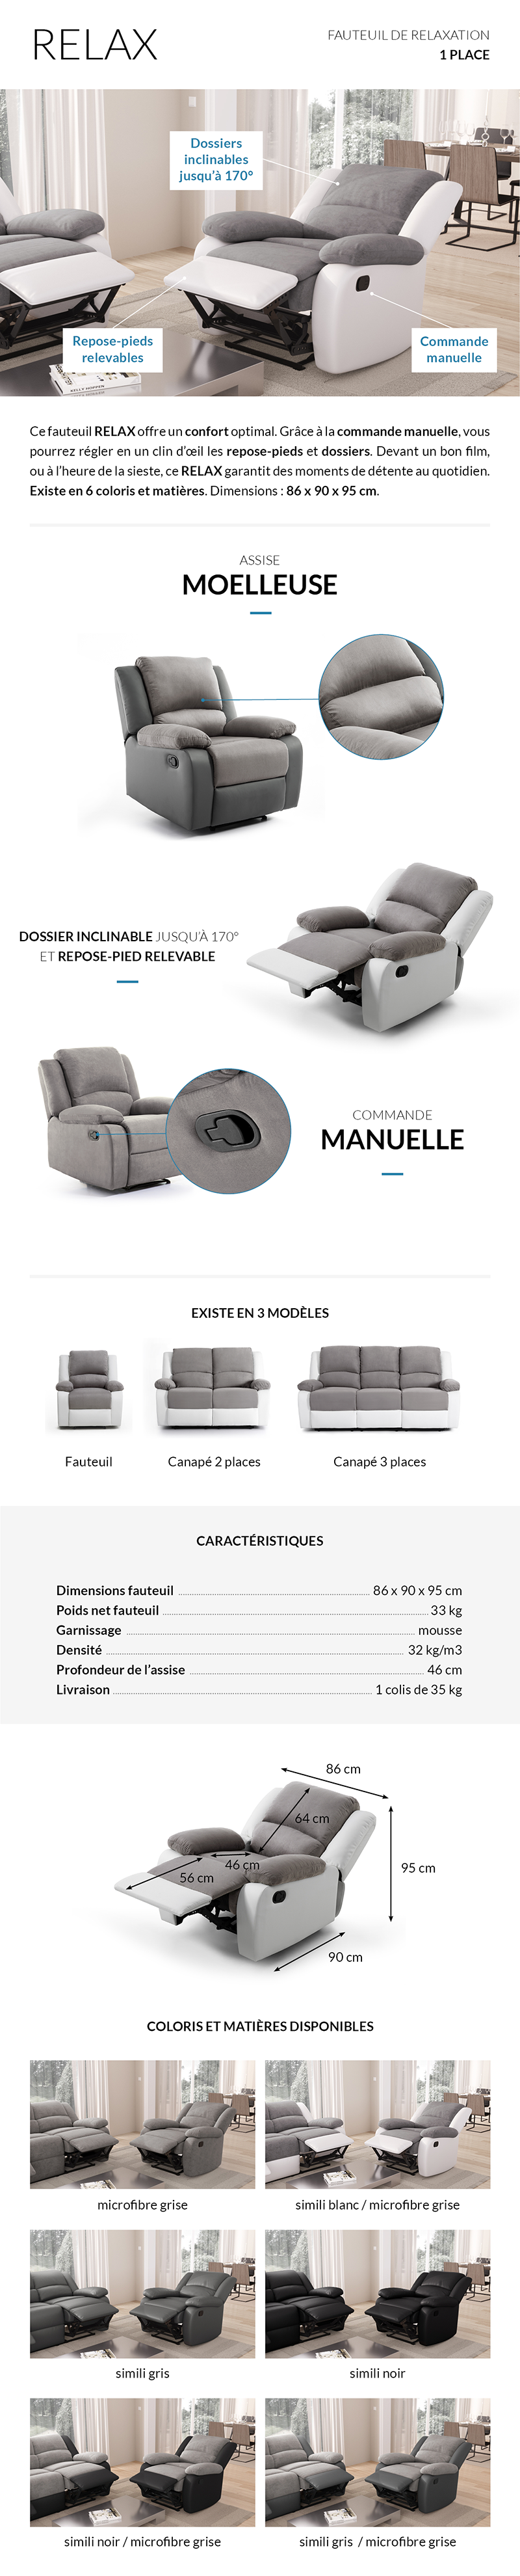 DM%20RELAX%20fauteuil.png